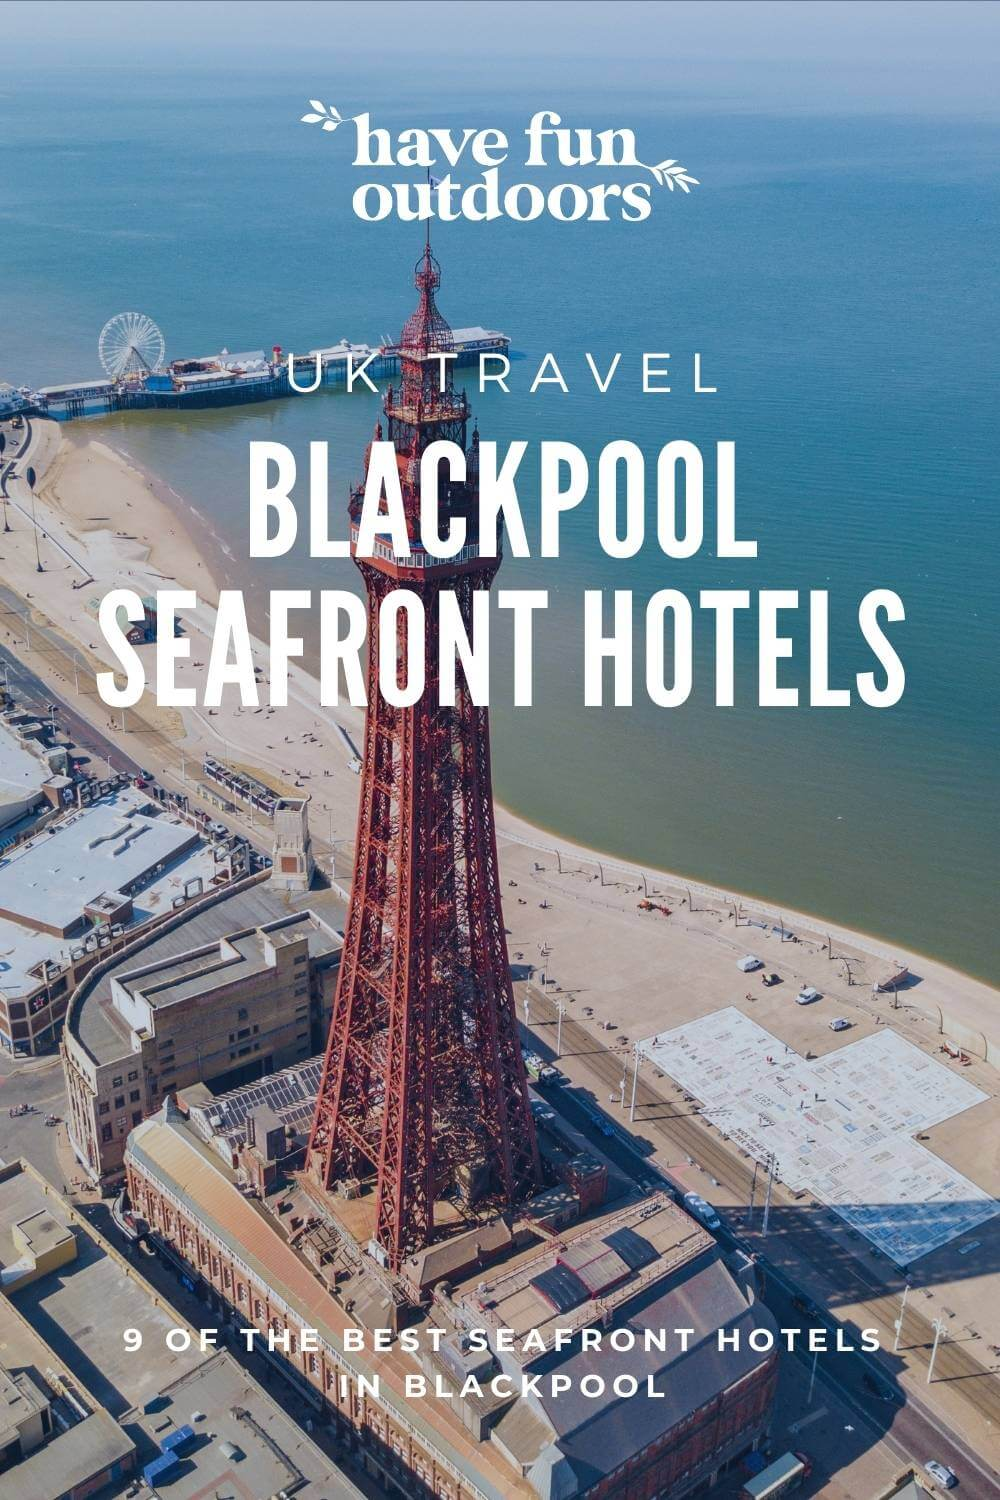 Blackpool Seafront Hotels, 9 Of The Best Seafront Hotels In Blackpool